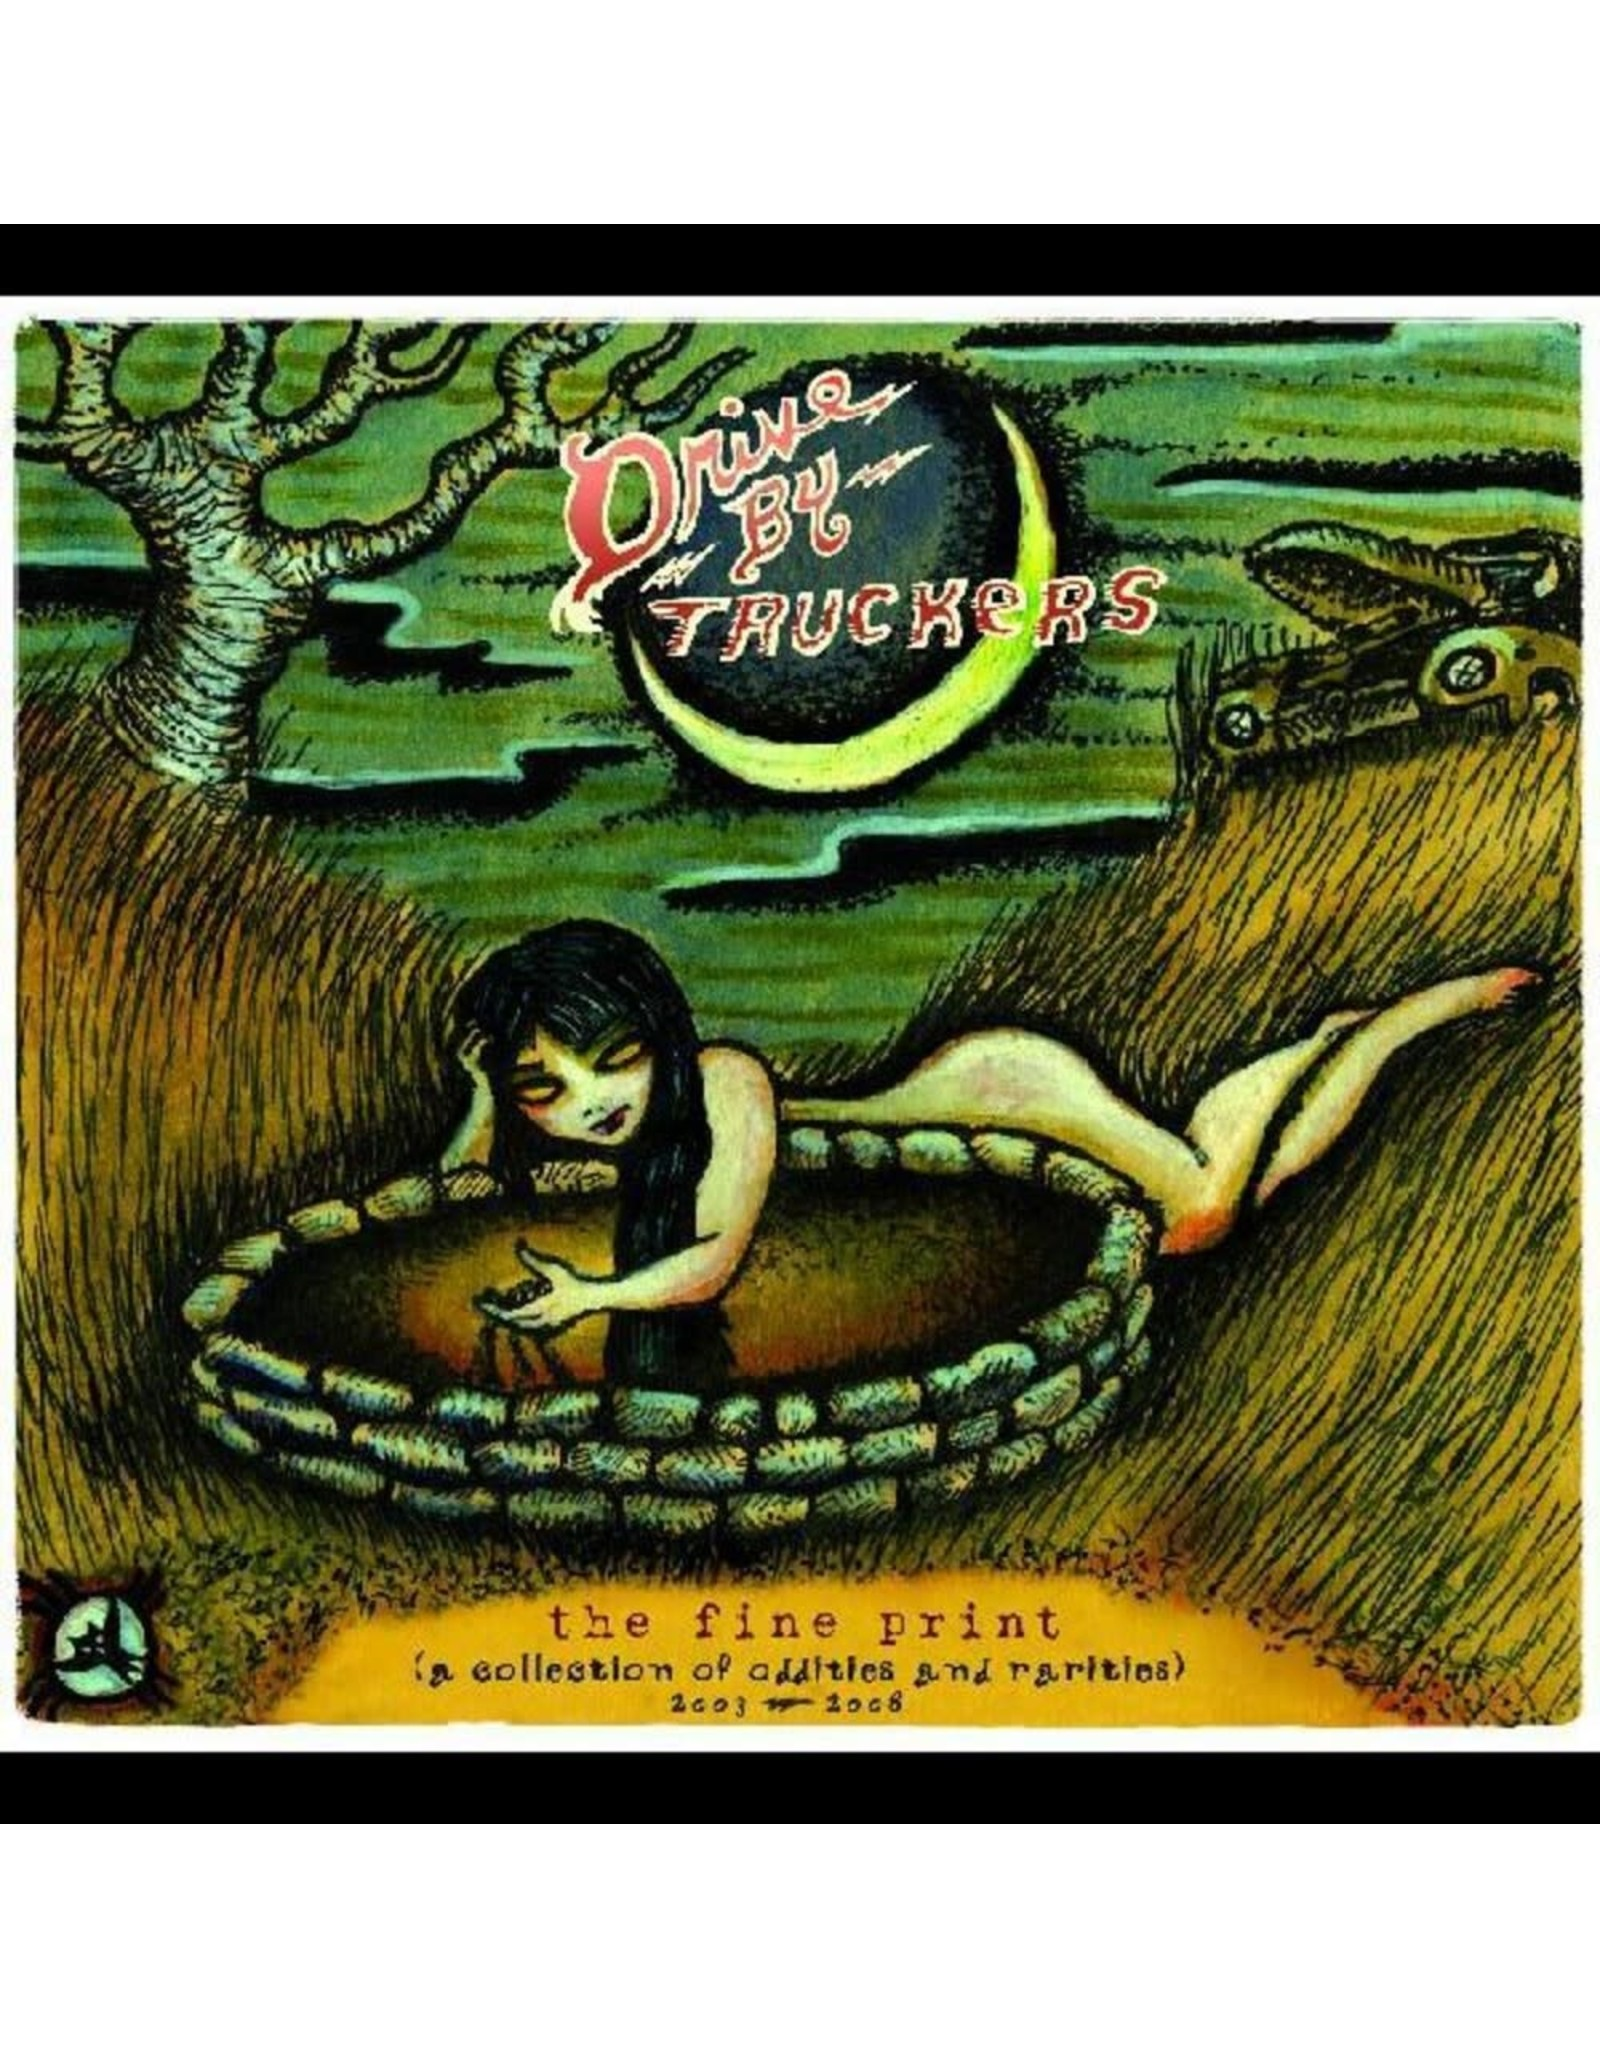 Drive-By Truckers - The Fine Print (A Collection of Oddities and Rarities) 2003-2008 LP (coloured)